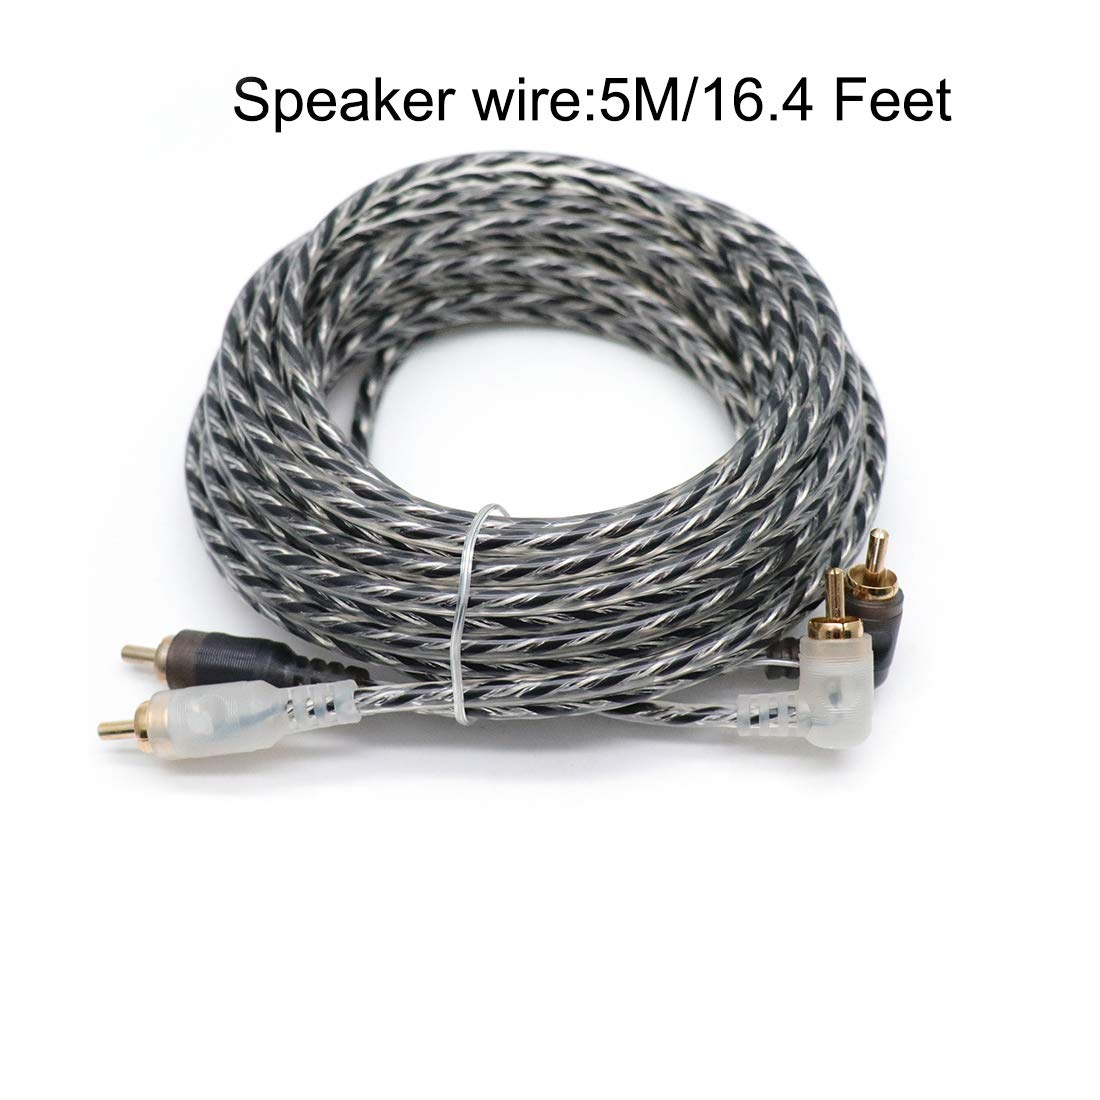 Subwoofers and Speakers Sydien 6 Gauge Amp Auto Car Audio System Speaker Kit Amplifier Install Wiring Cable 1200W Make Connections /& Brings Power to Your Radio